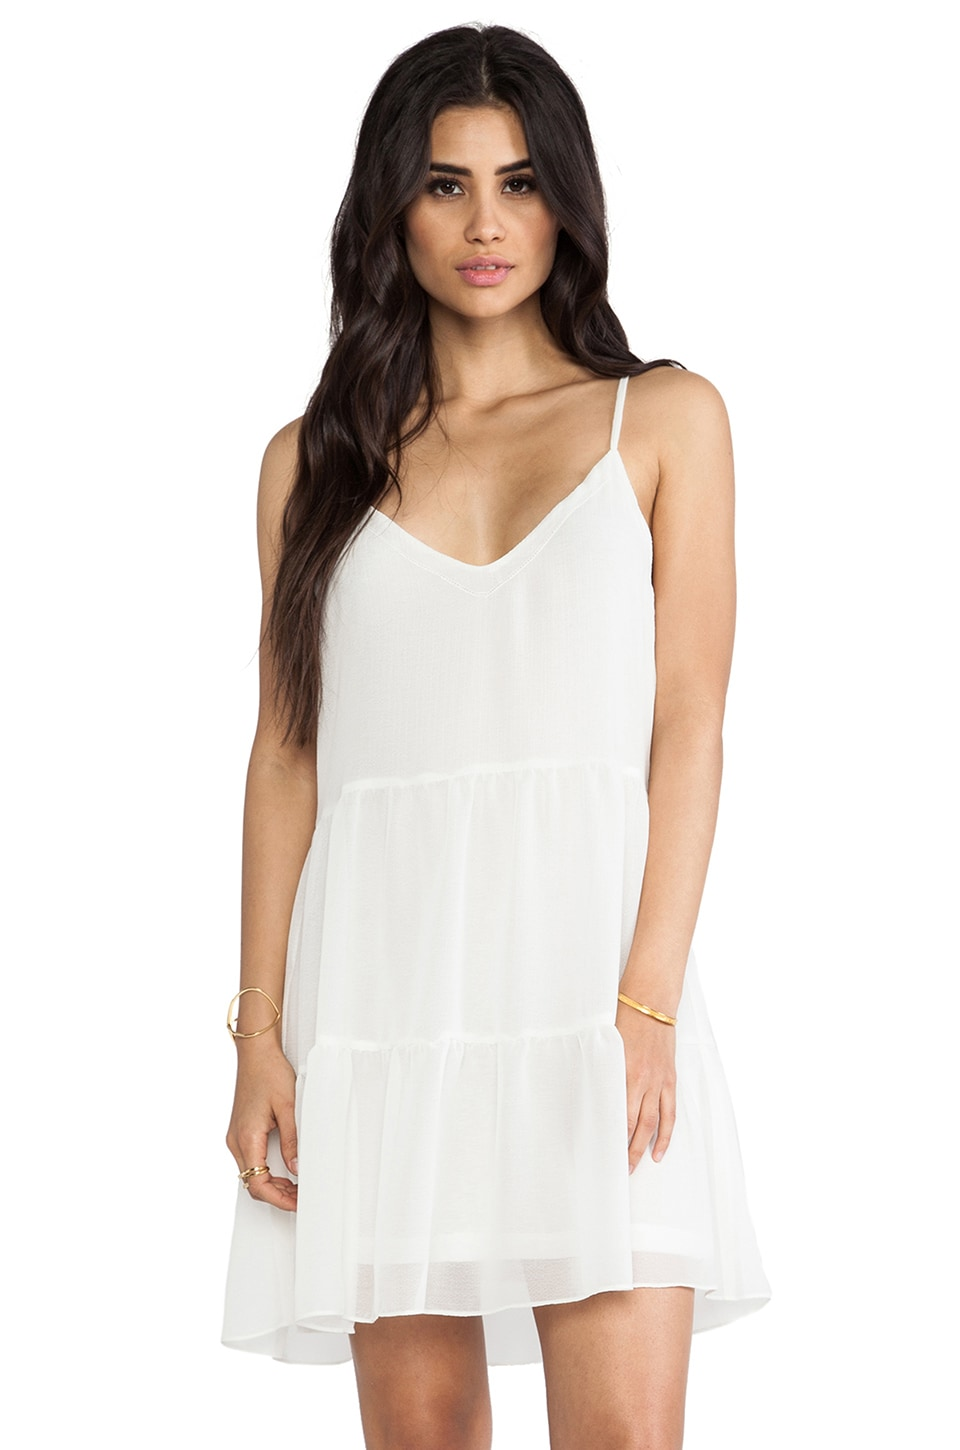 Dolce Vita Amalia Dress in White